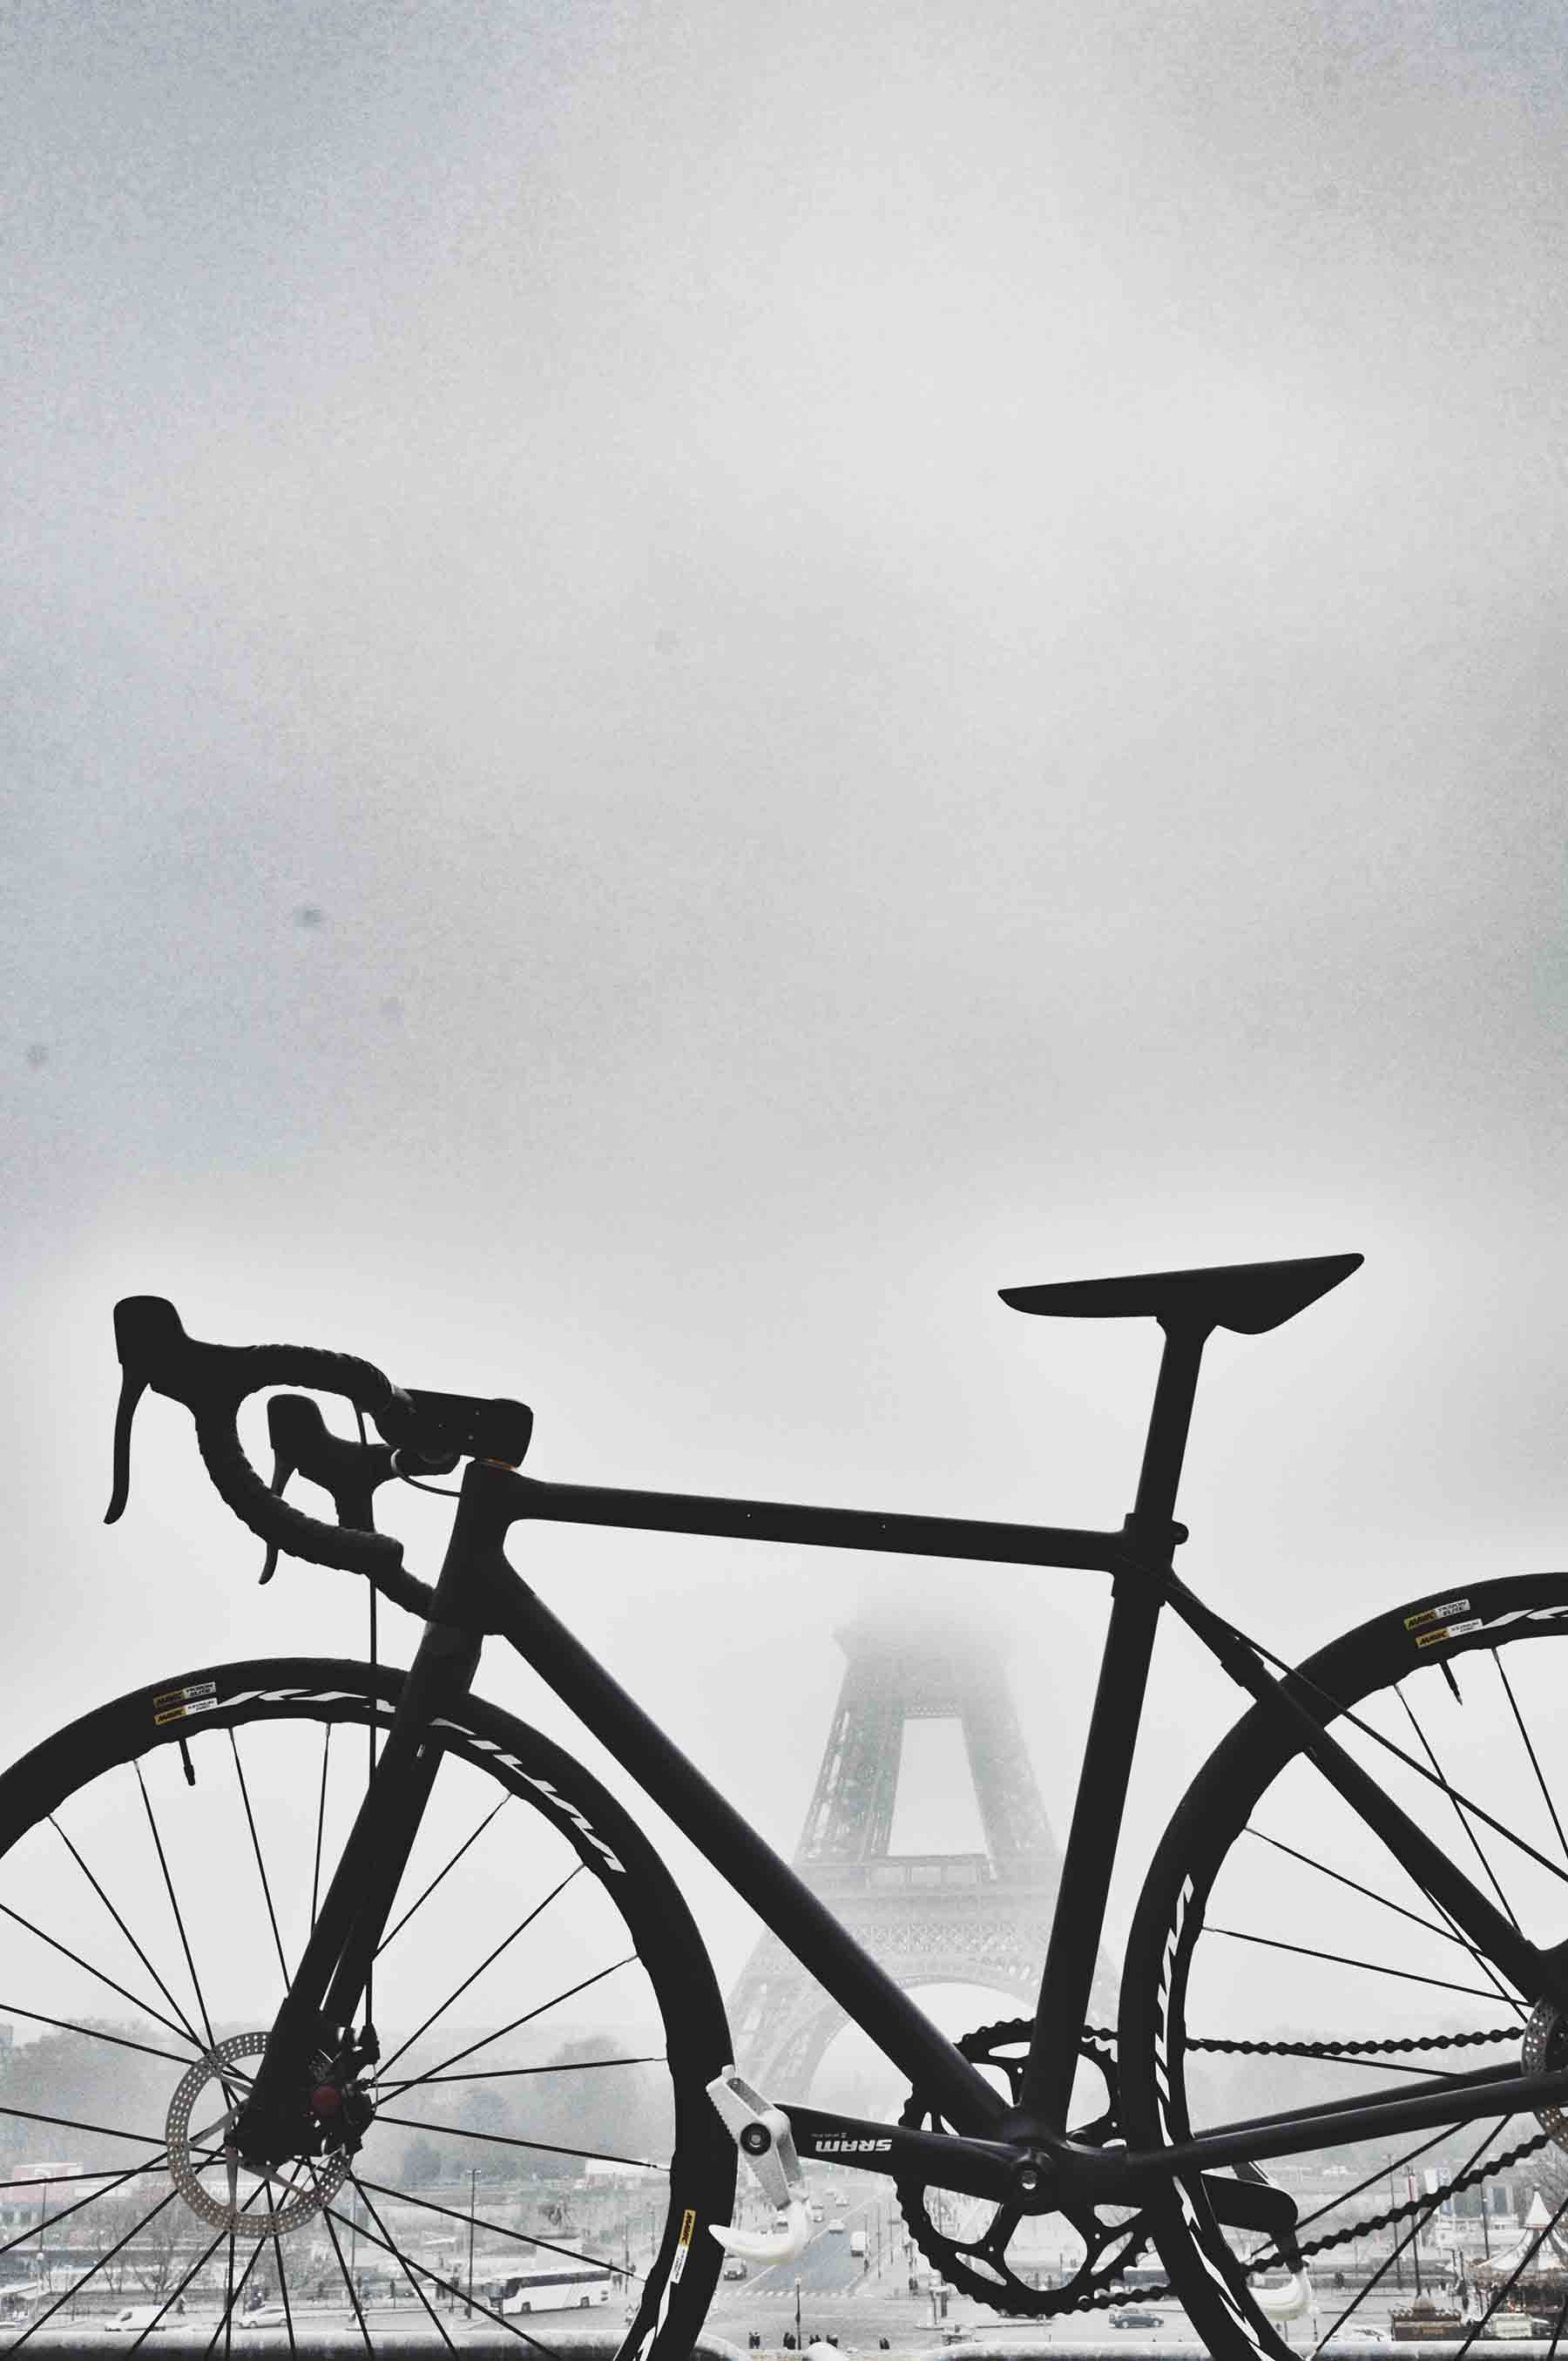 cloud effect and bike